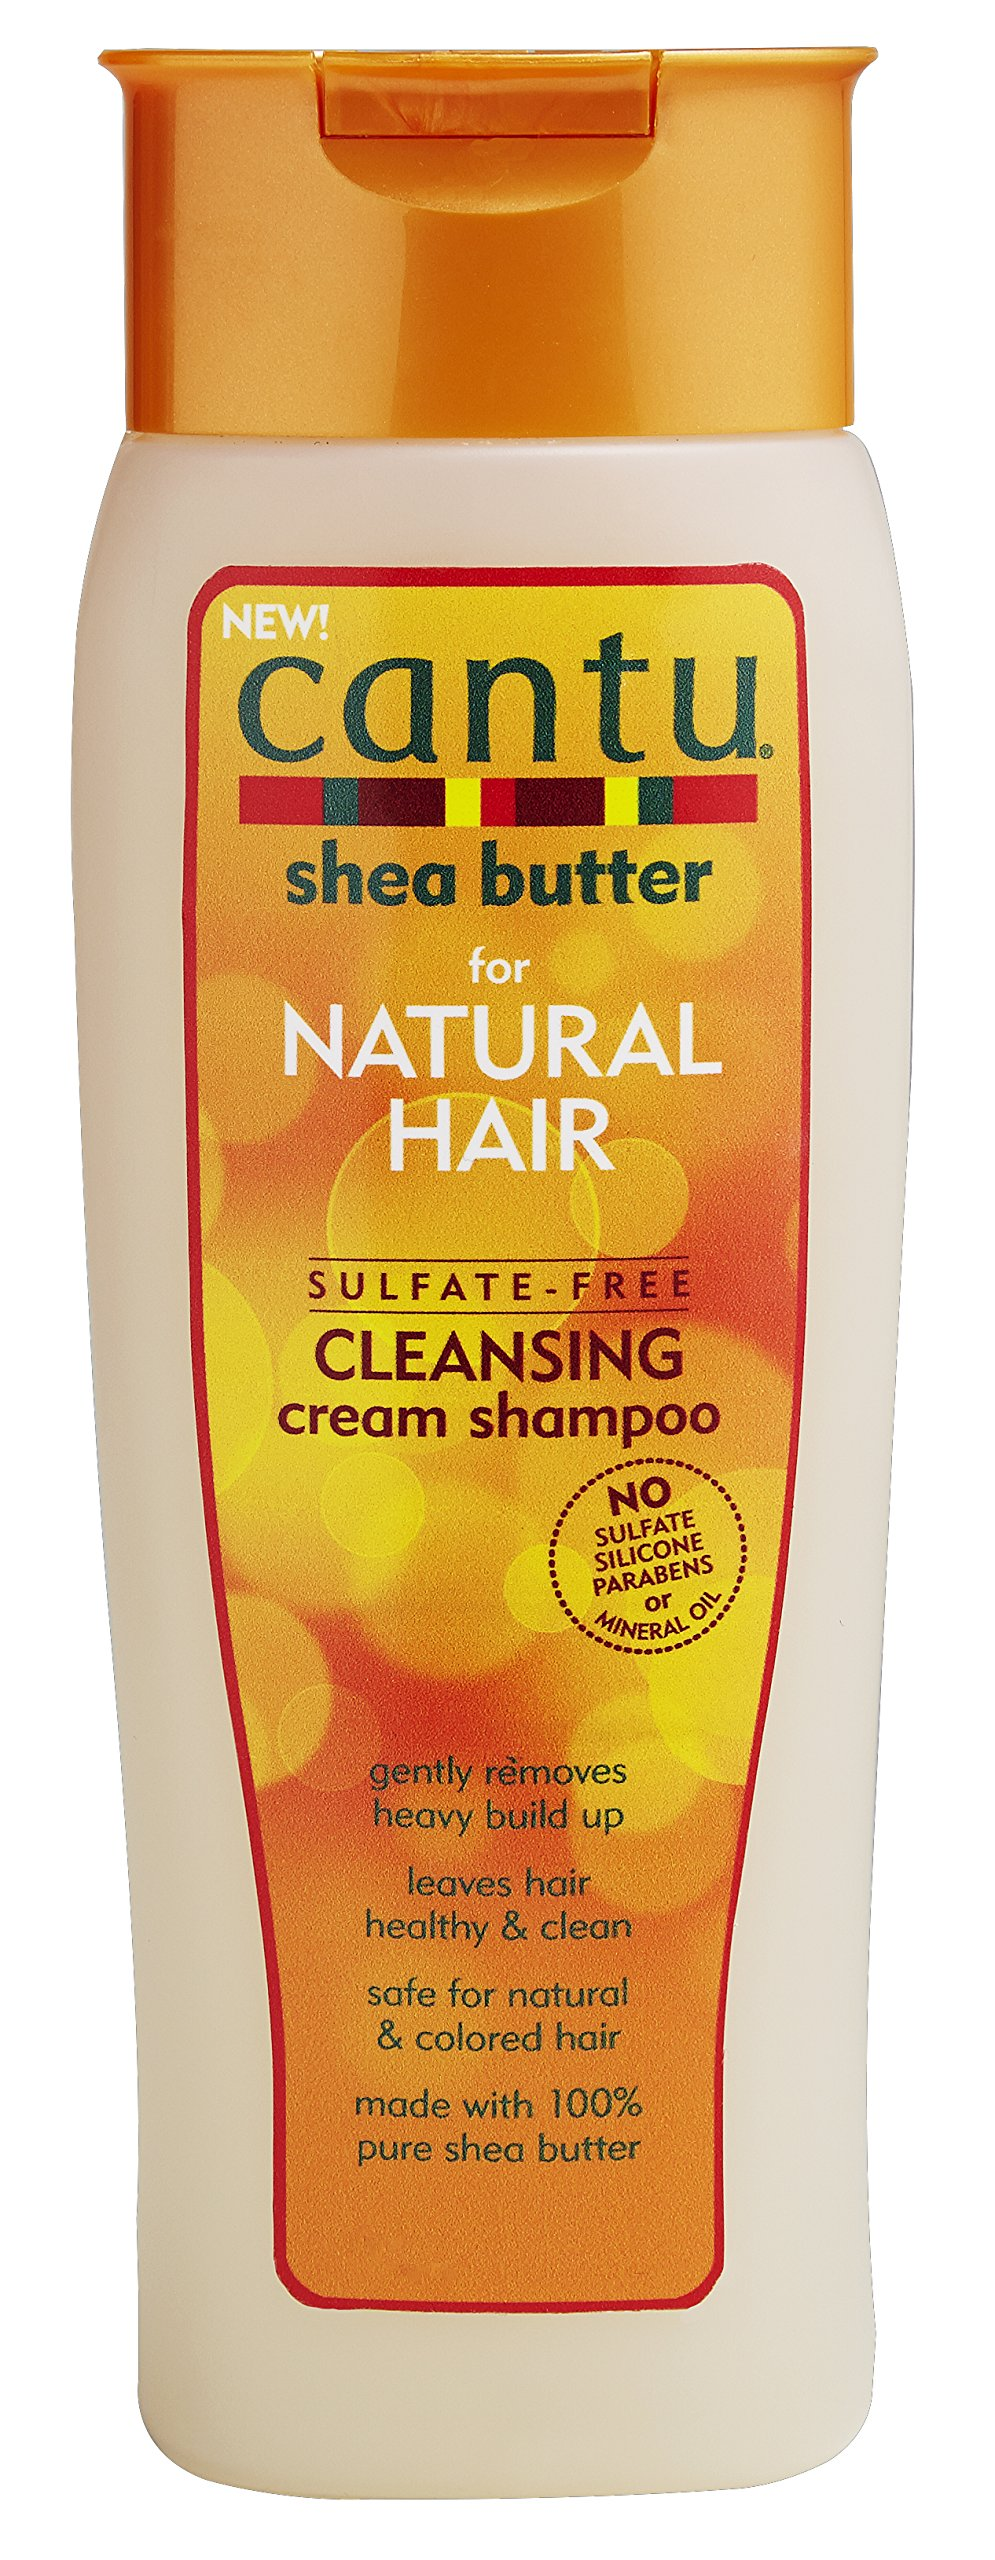 Cantu Sulfate-Free Cleansing Cream Shampoo, 13.5 Fluid Ounce (Pack of 4)